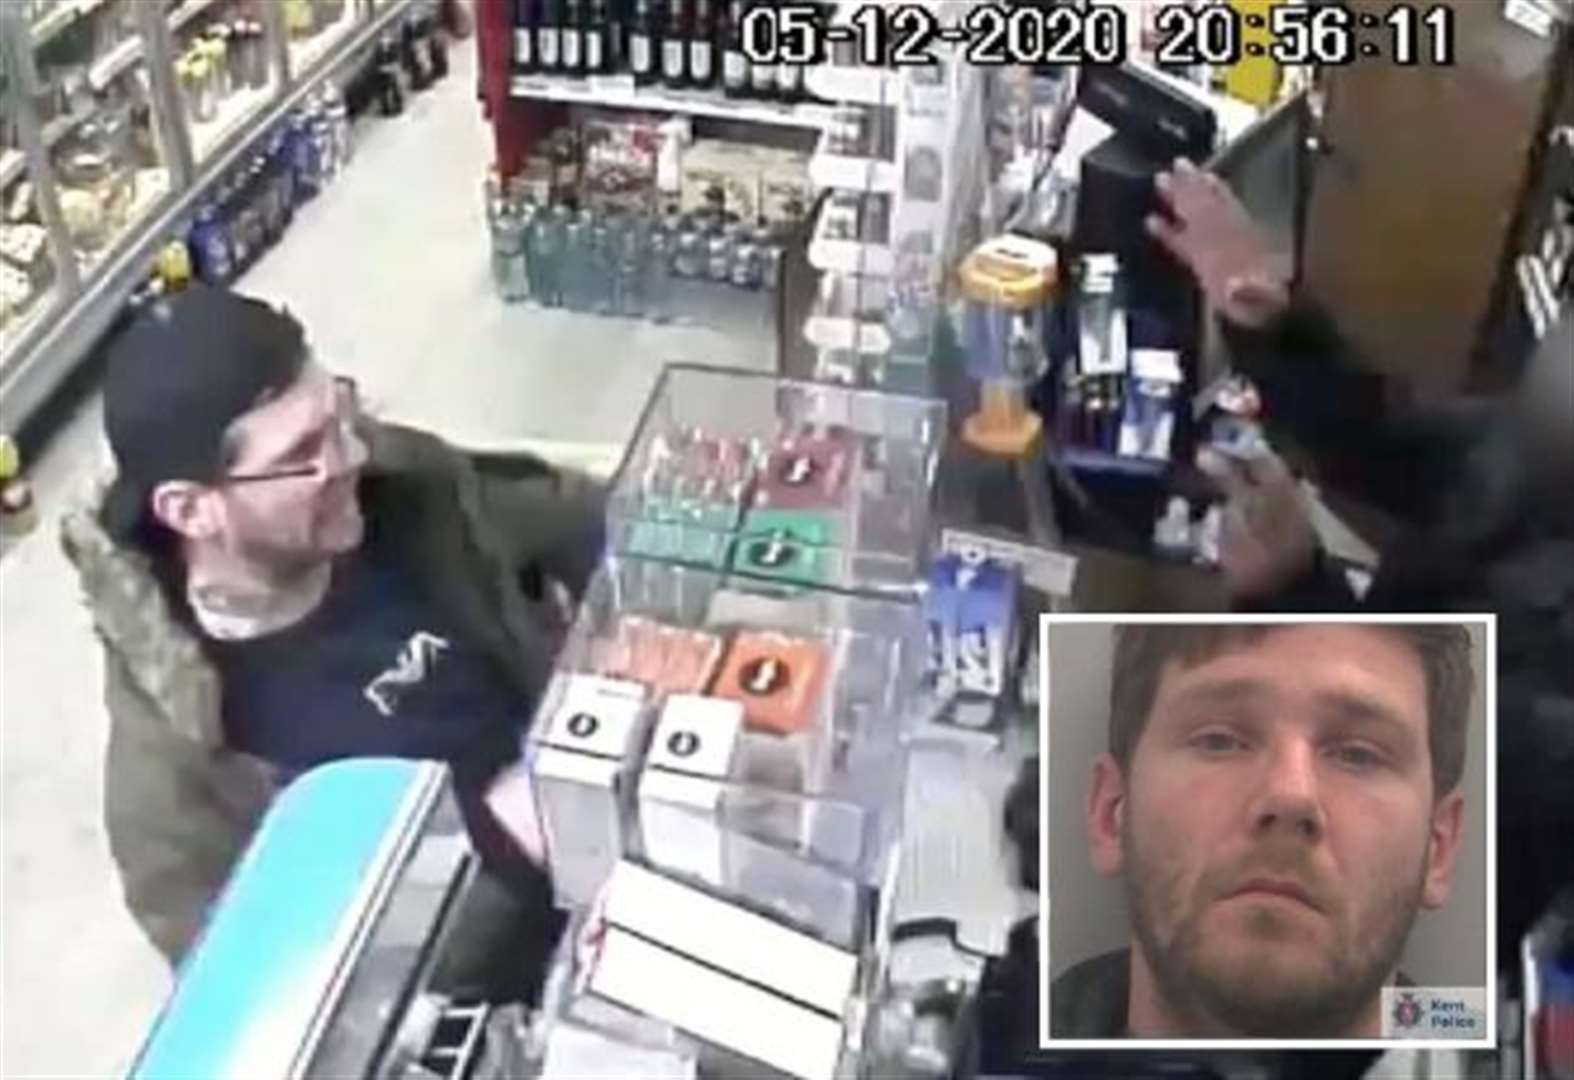 Shopper's appalling outburst caught on camera